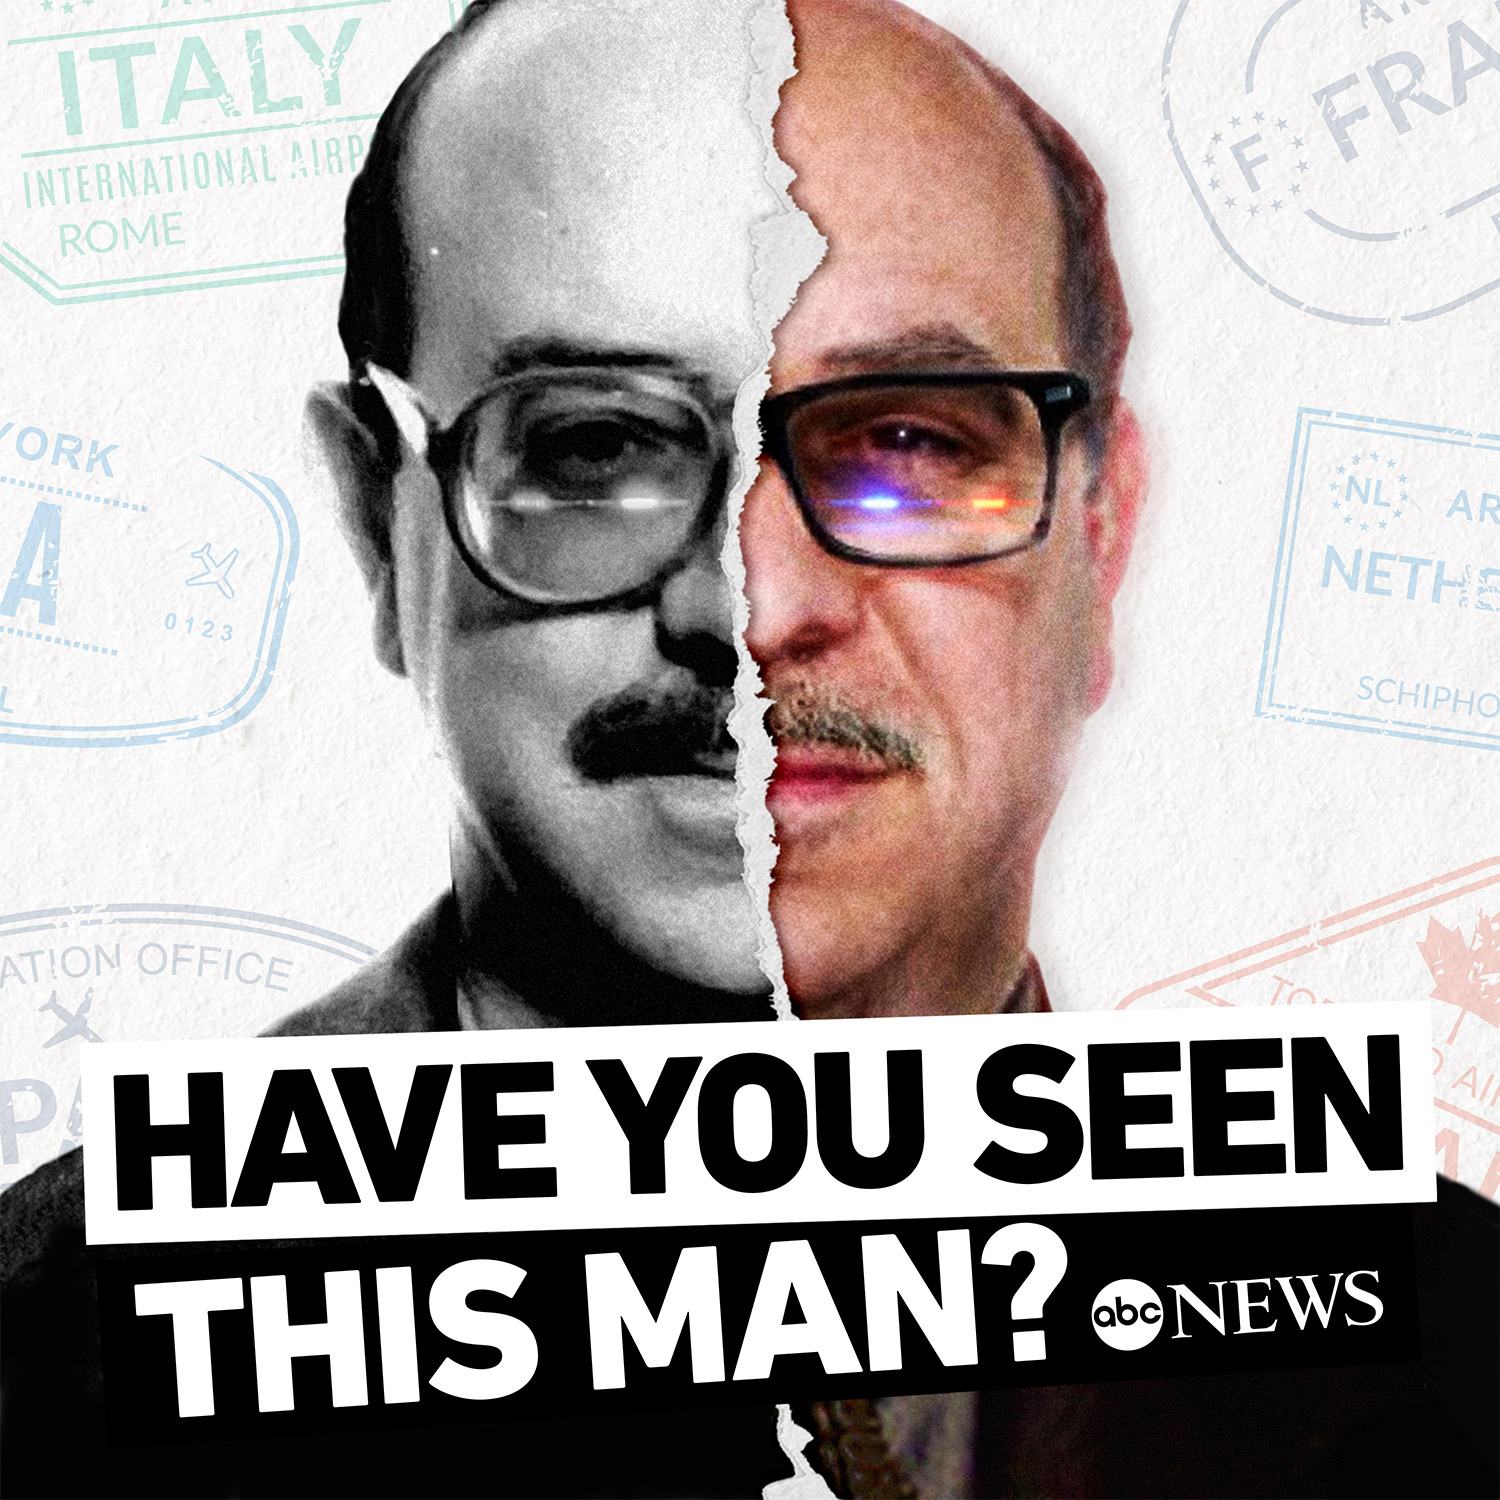 Have You Seen This Man podcast